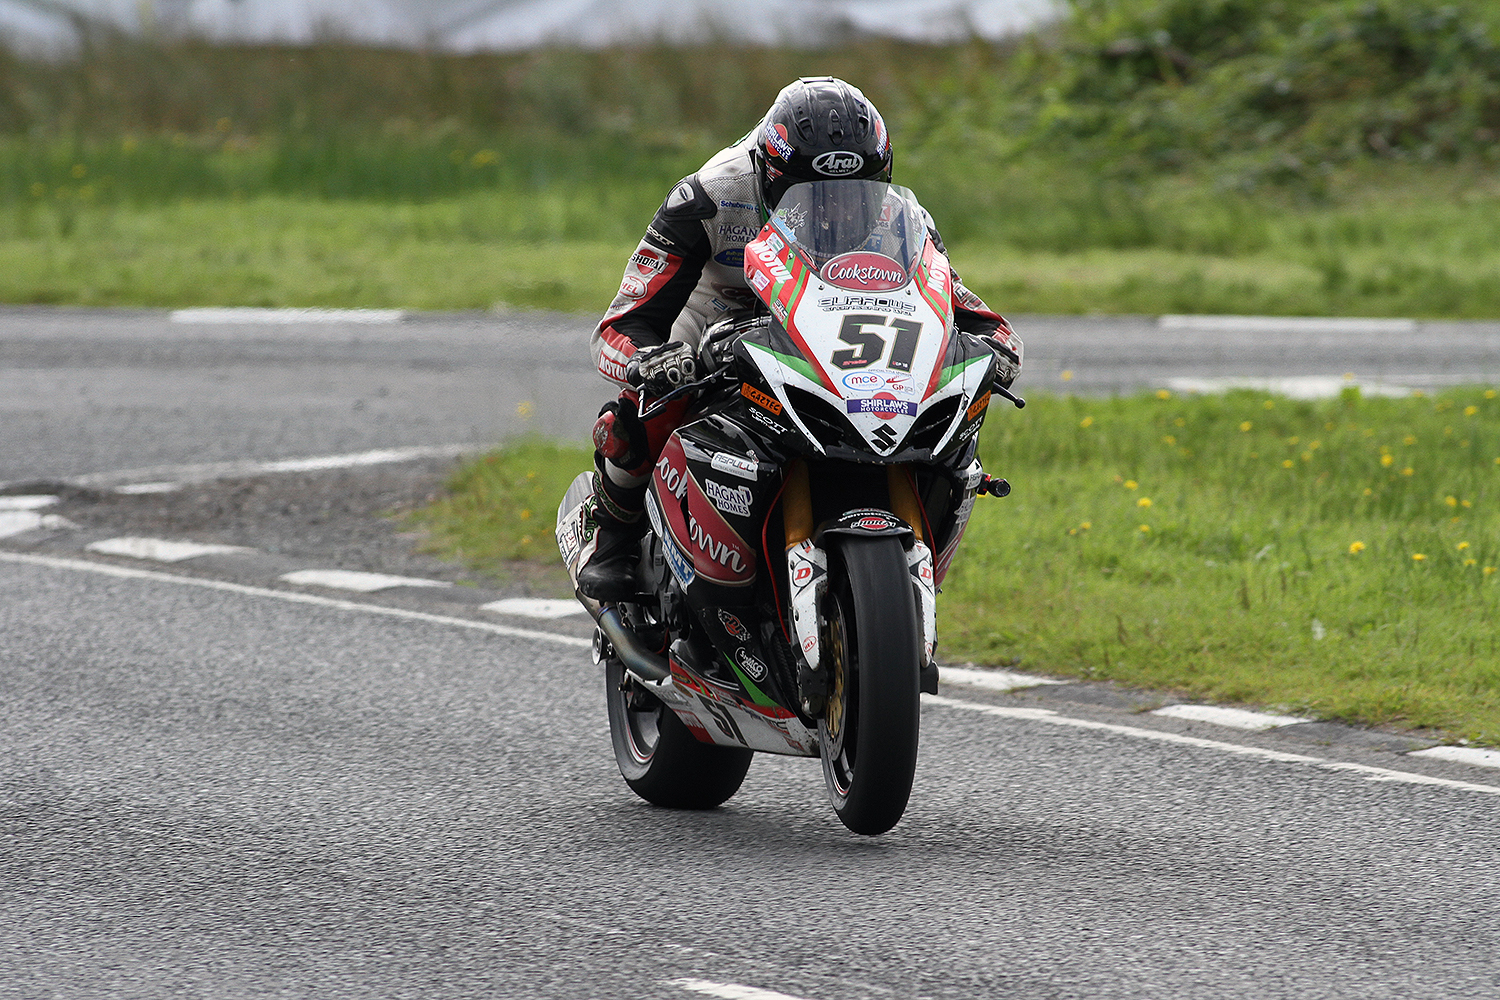 Cookstown BE Racing Continue Gold Star Season At The Ulster Grand Prix